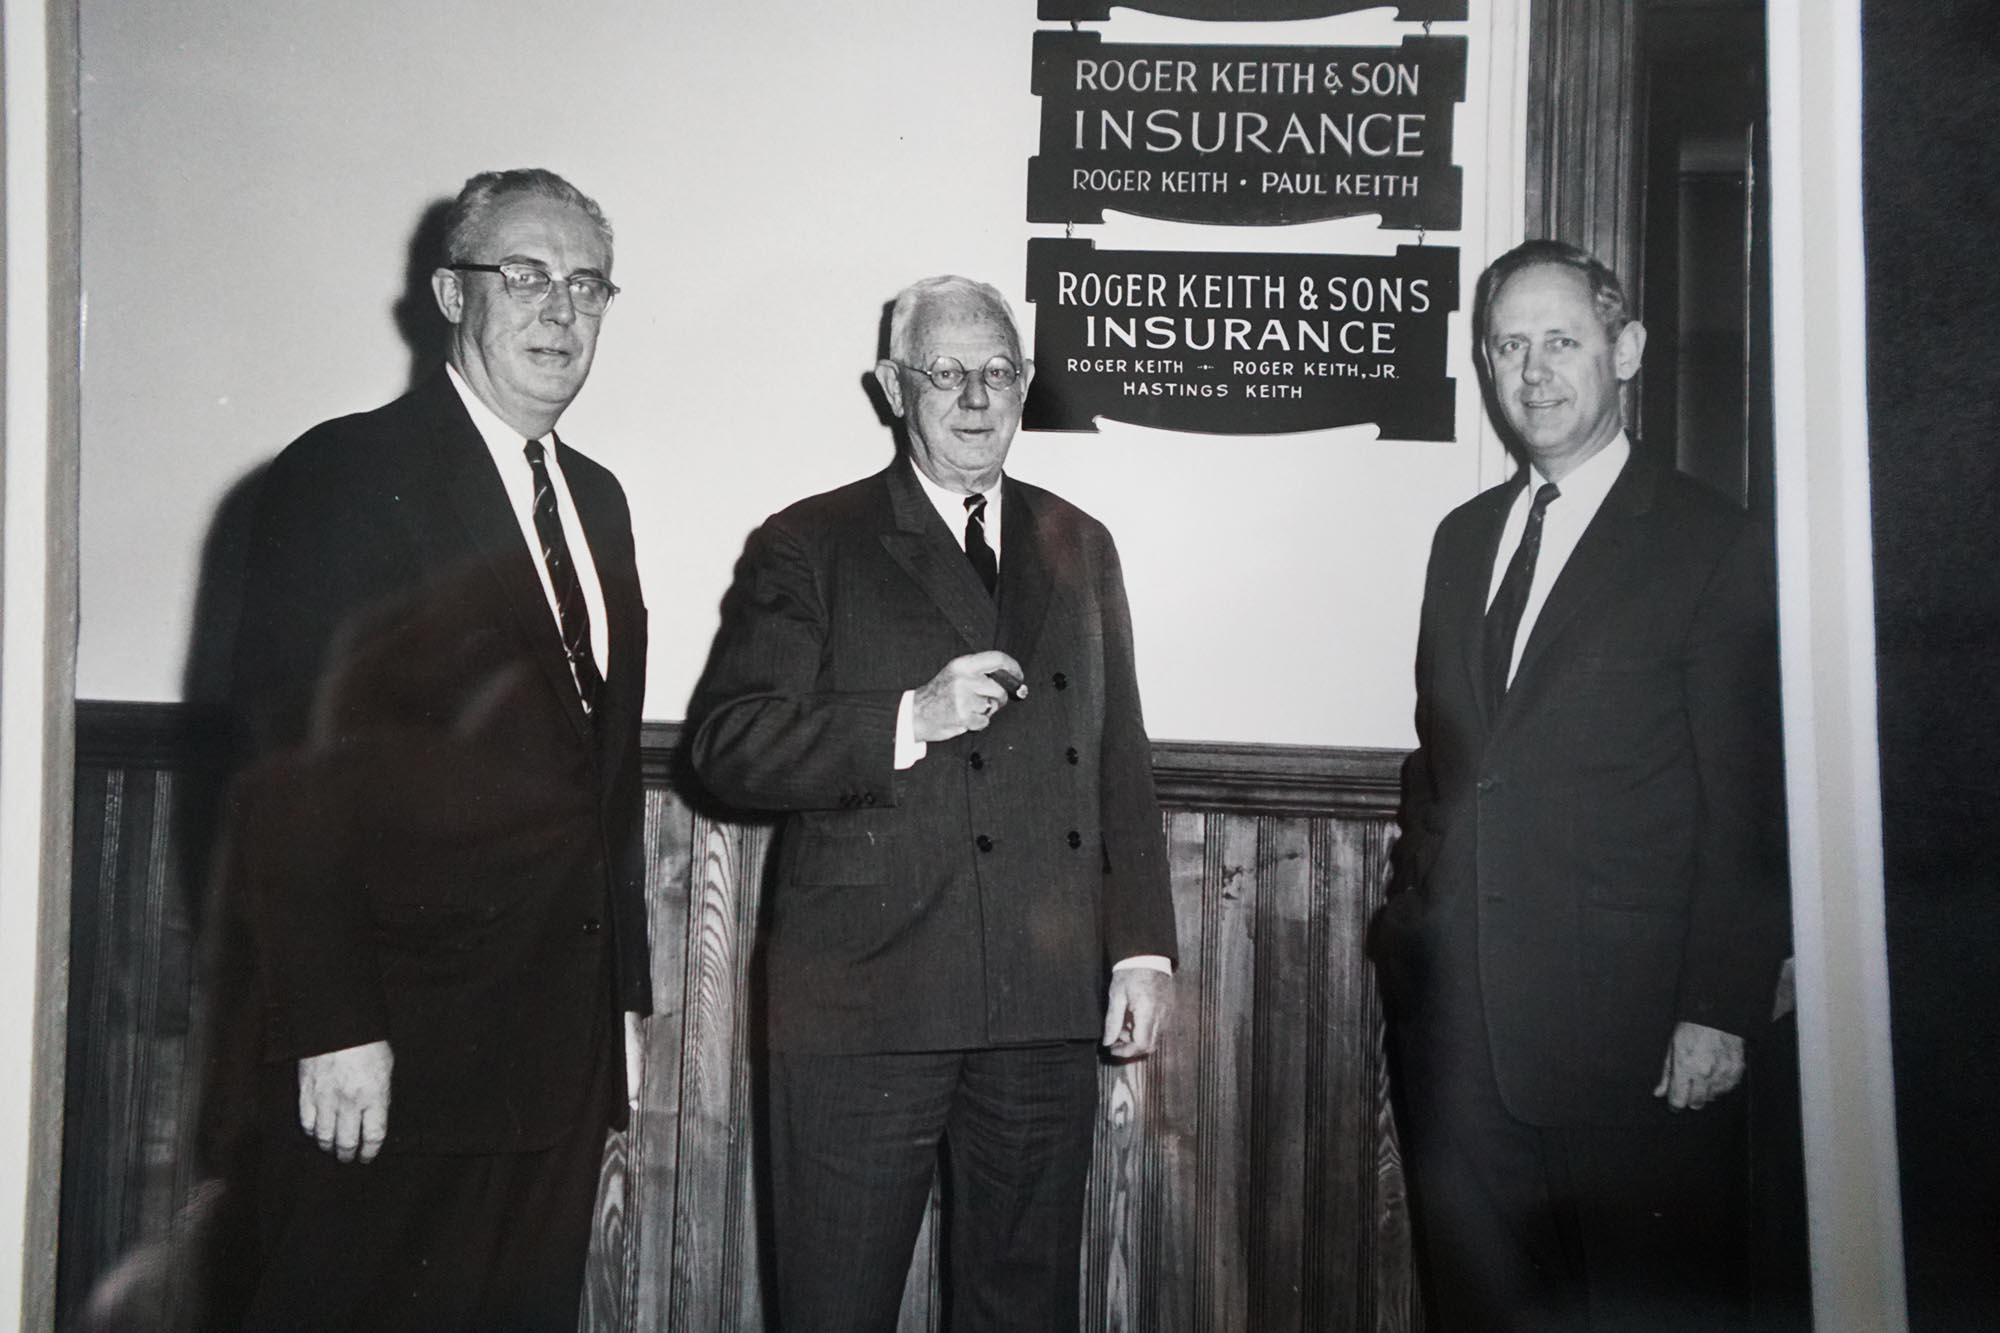 Roger Keith & Sons Insurance | Founders